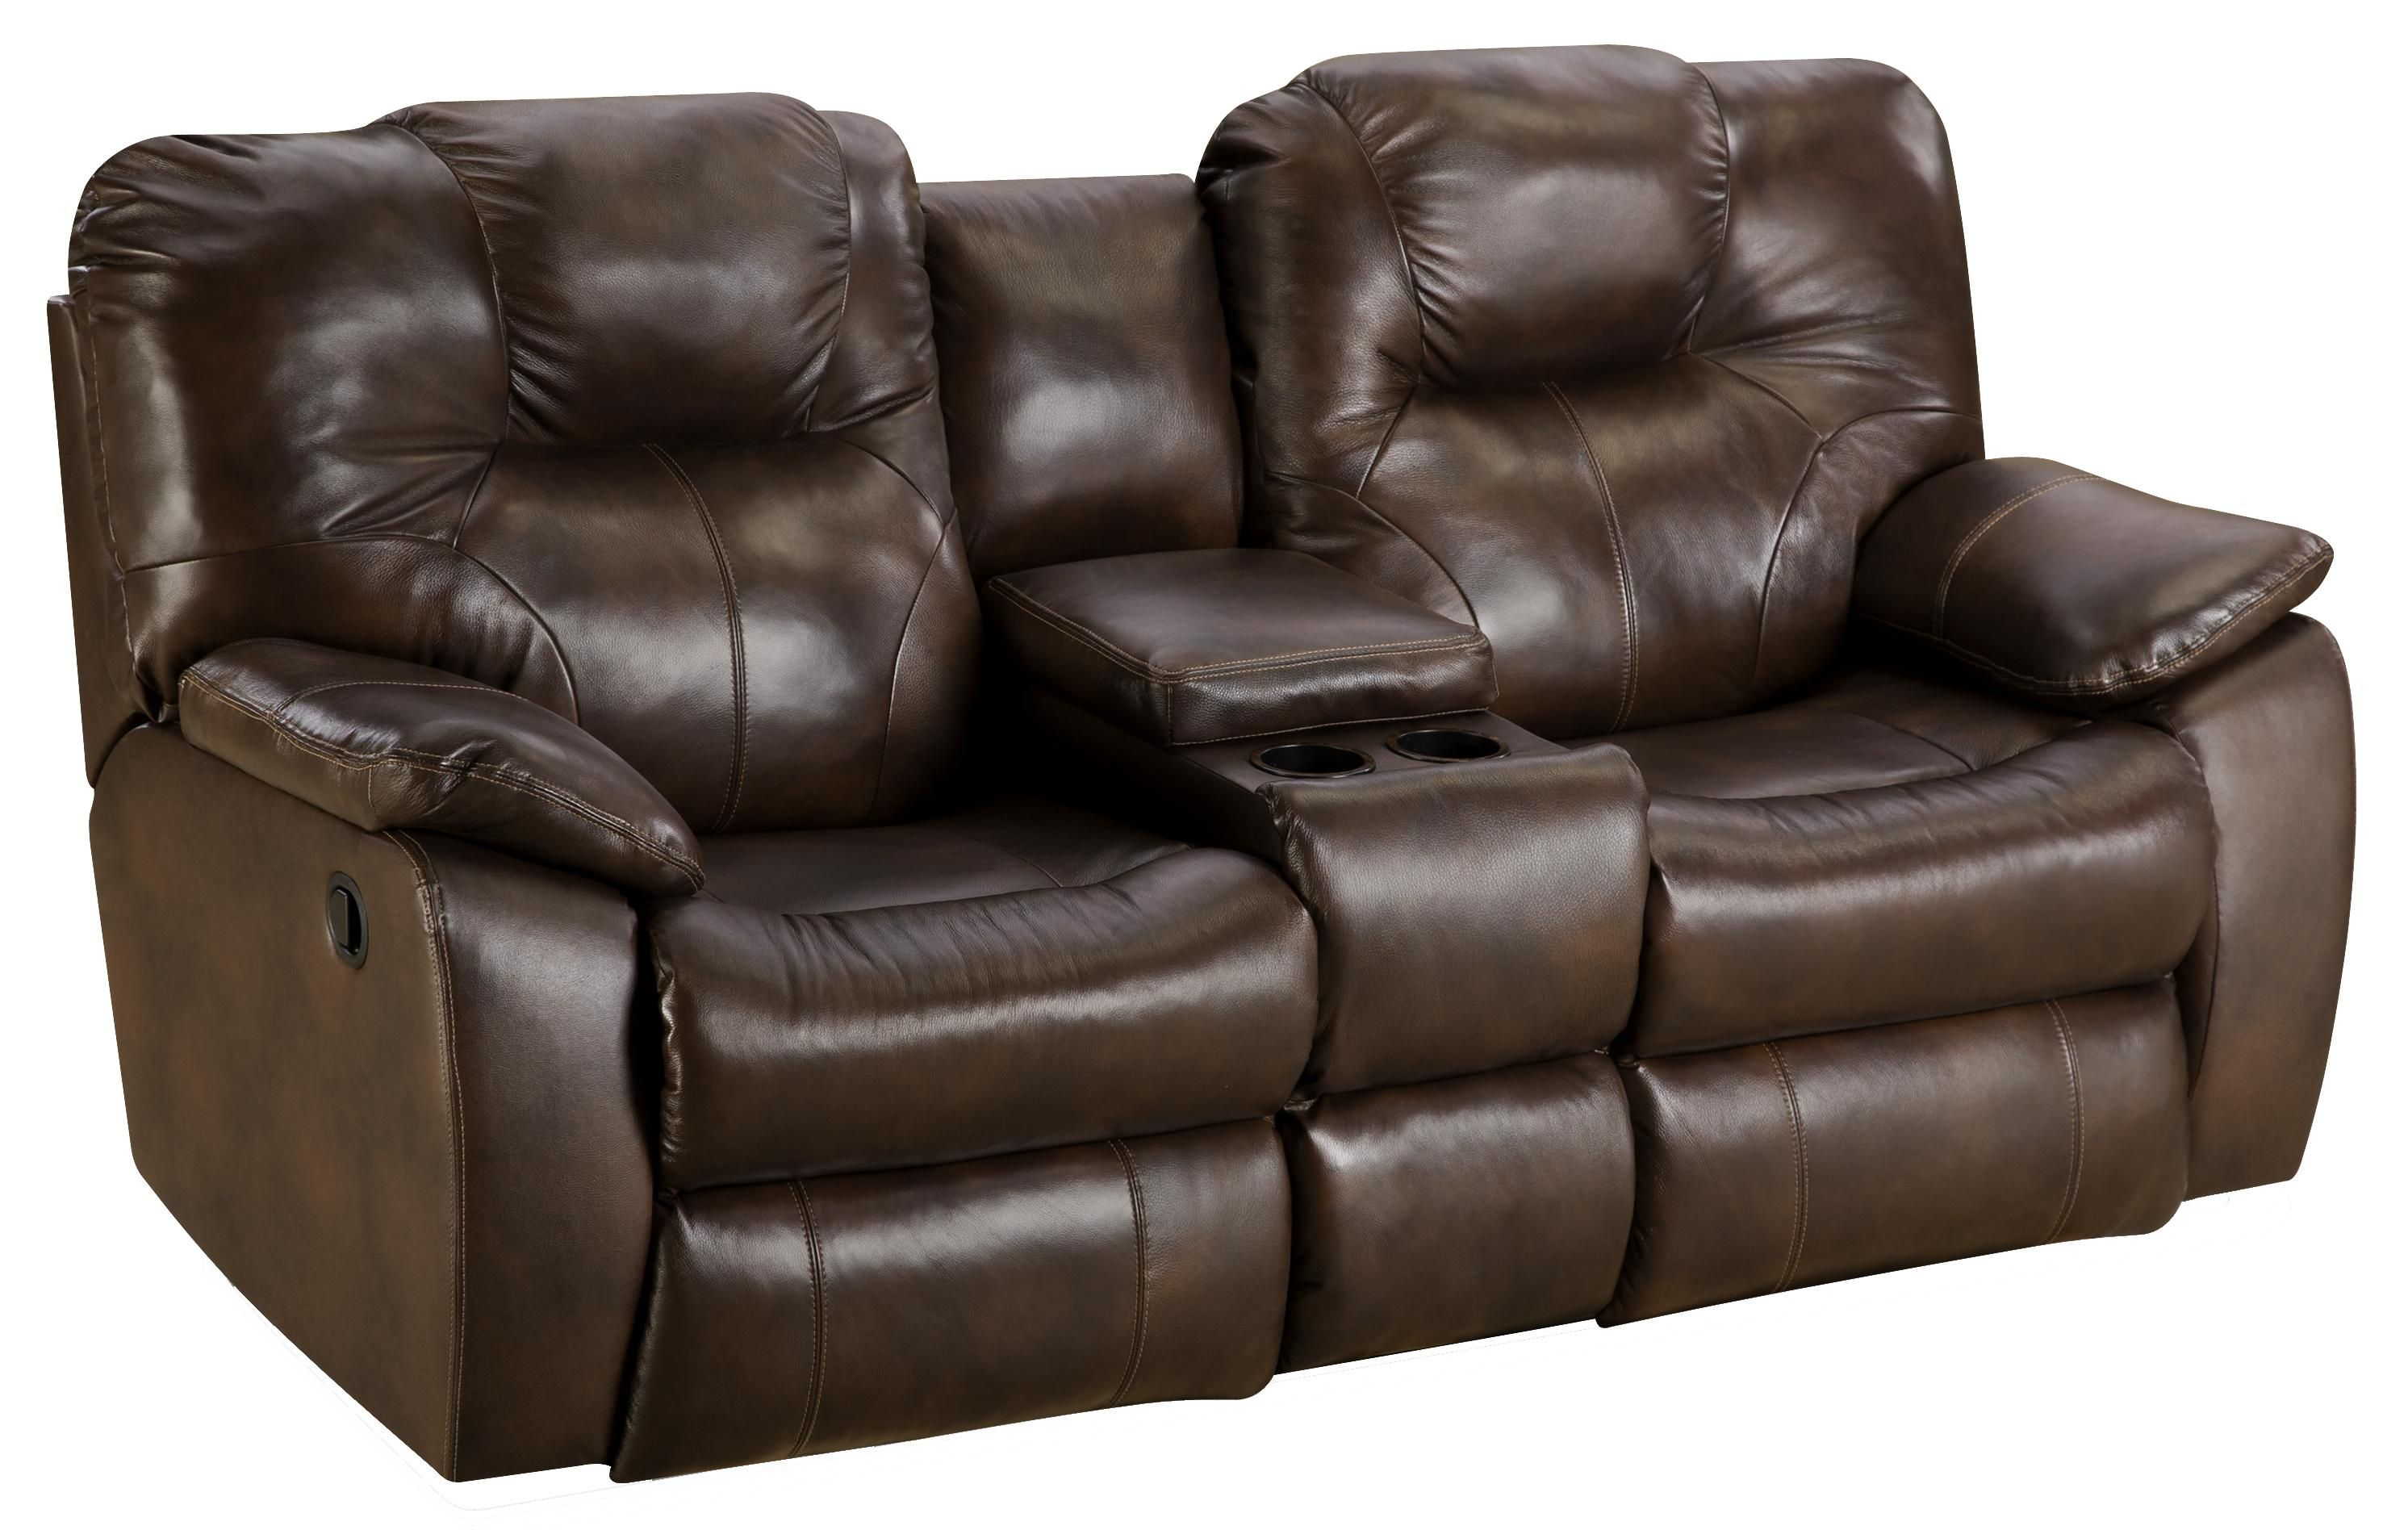 Southern Motion Furniture Avalon Power Reclining Sofa with